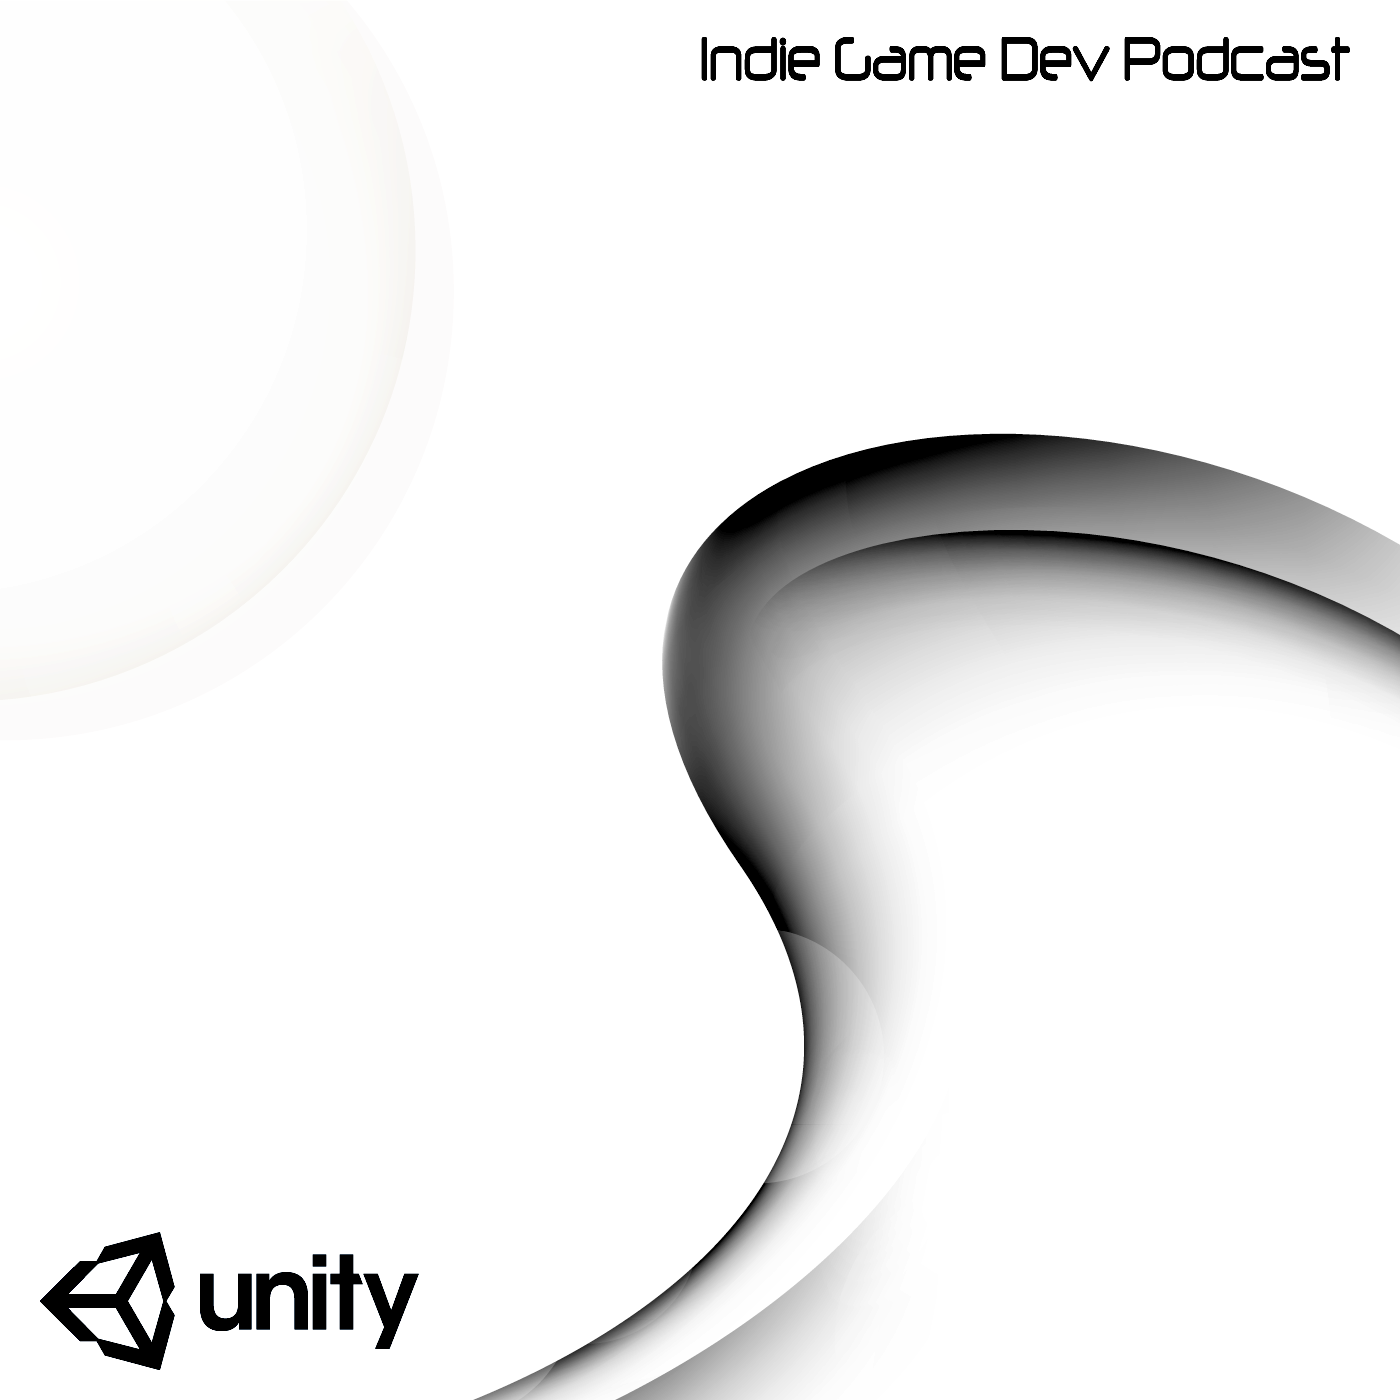 Unity 3D News Indie Game Dev Podcast | Listen via Stitcher for Podcasts